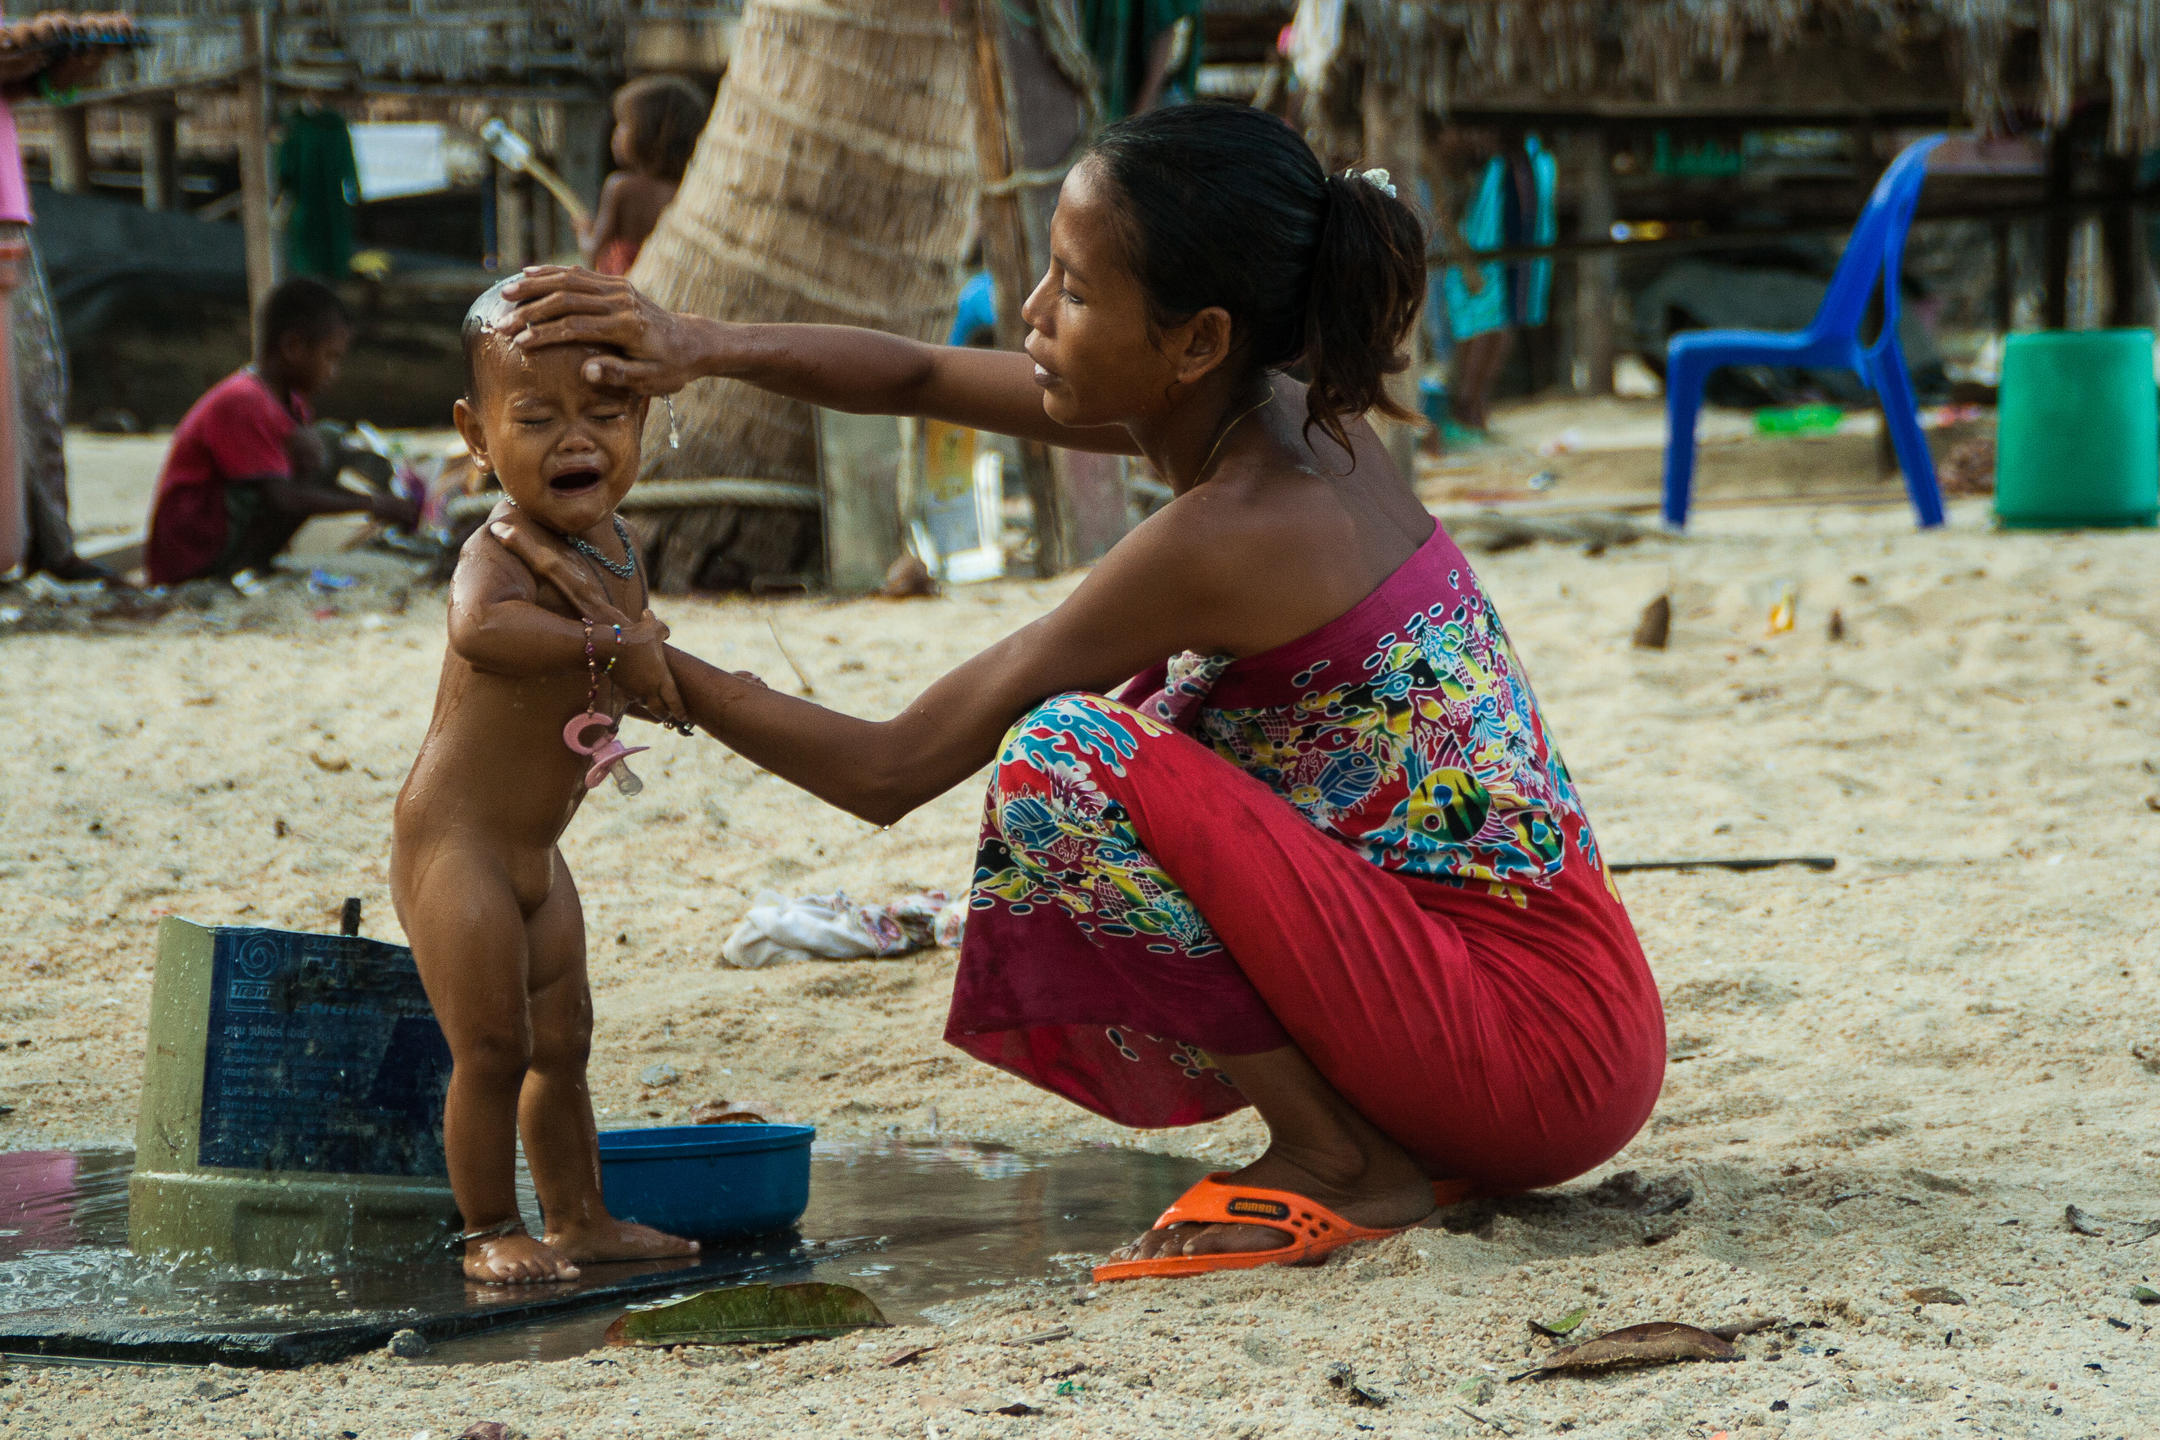 A mother washing her baby in a sea gypsy village in Thailand